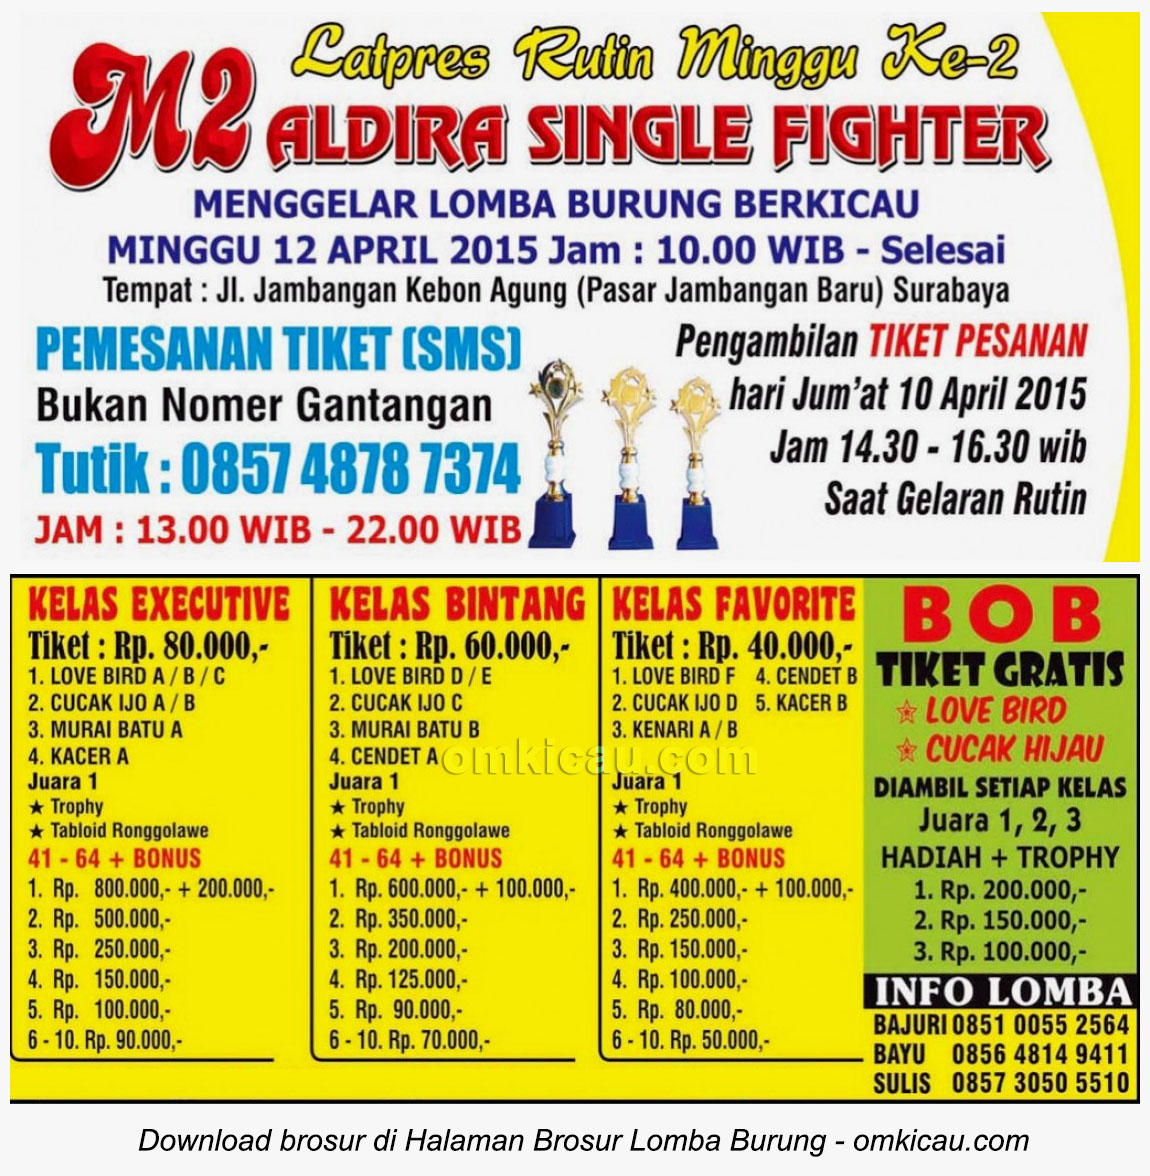 Brosur Latpres Aldira Single Fighter, Surabaya, 12 April 2015